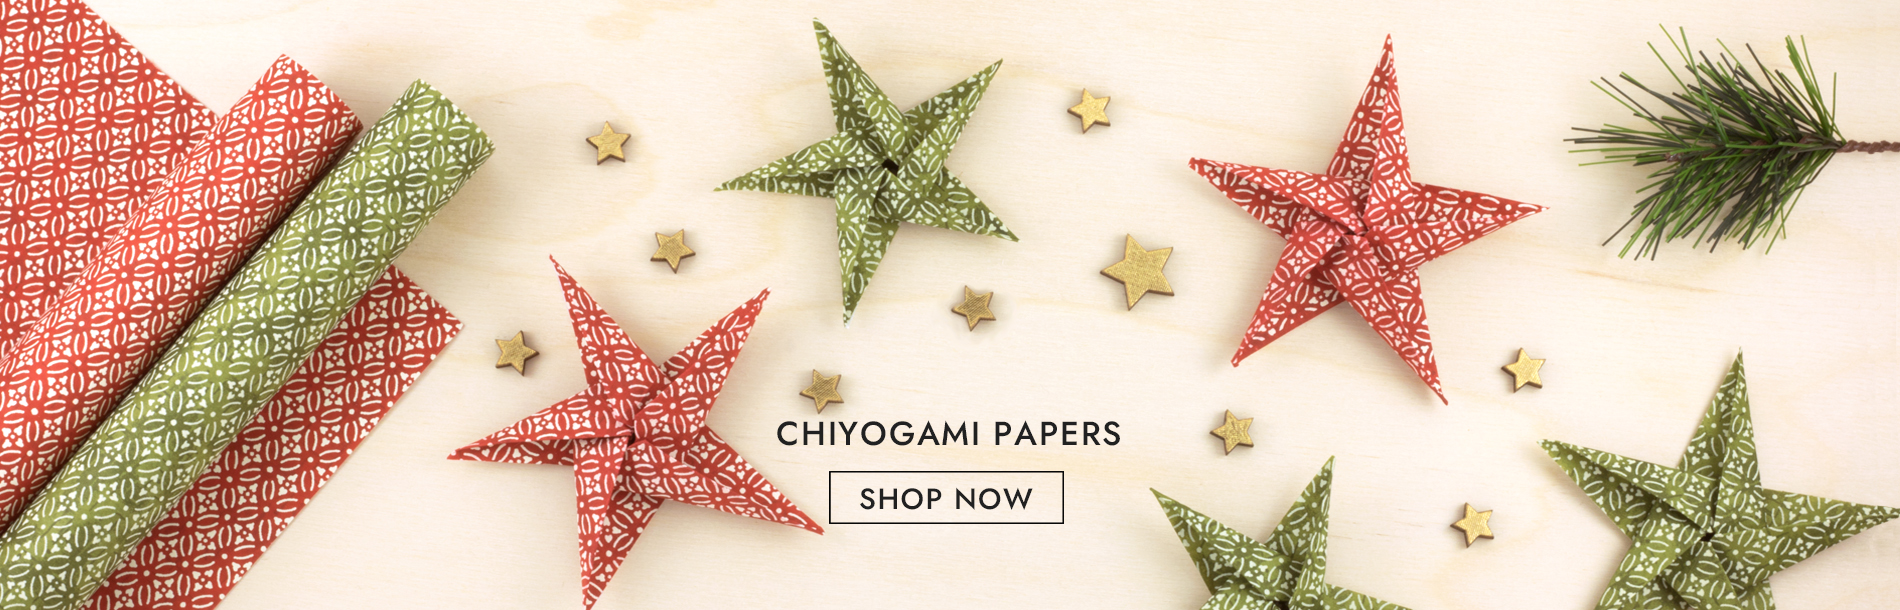 Chiyogami Papers